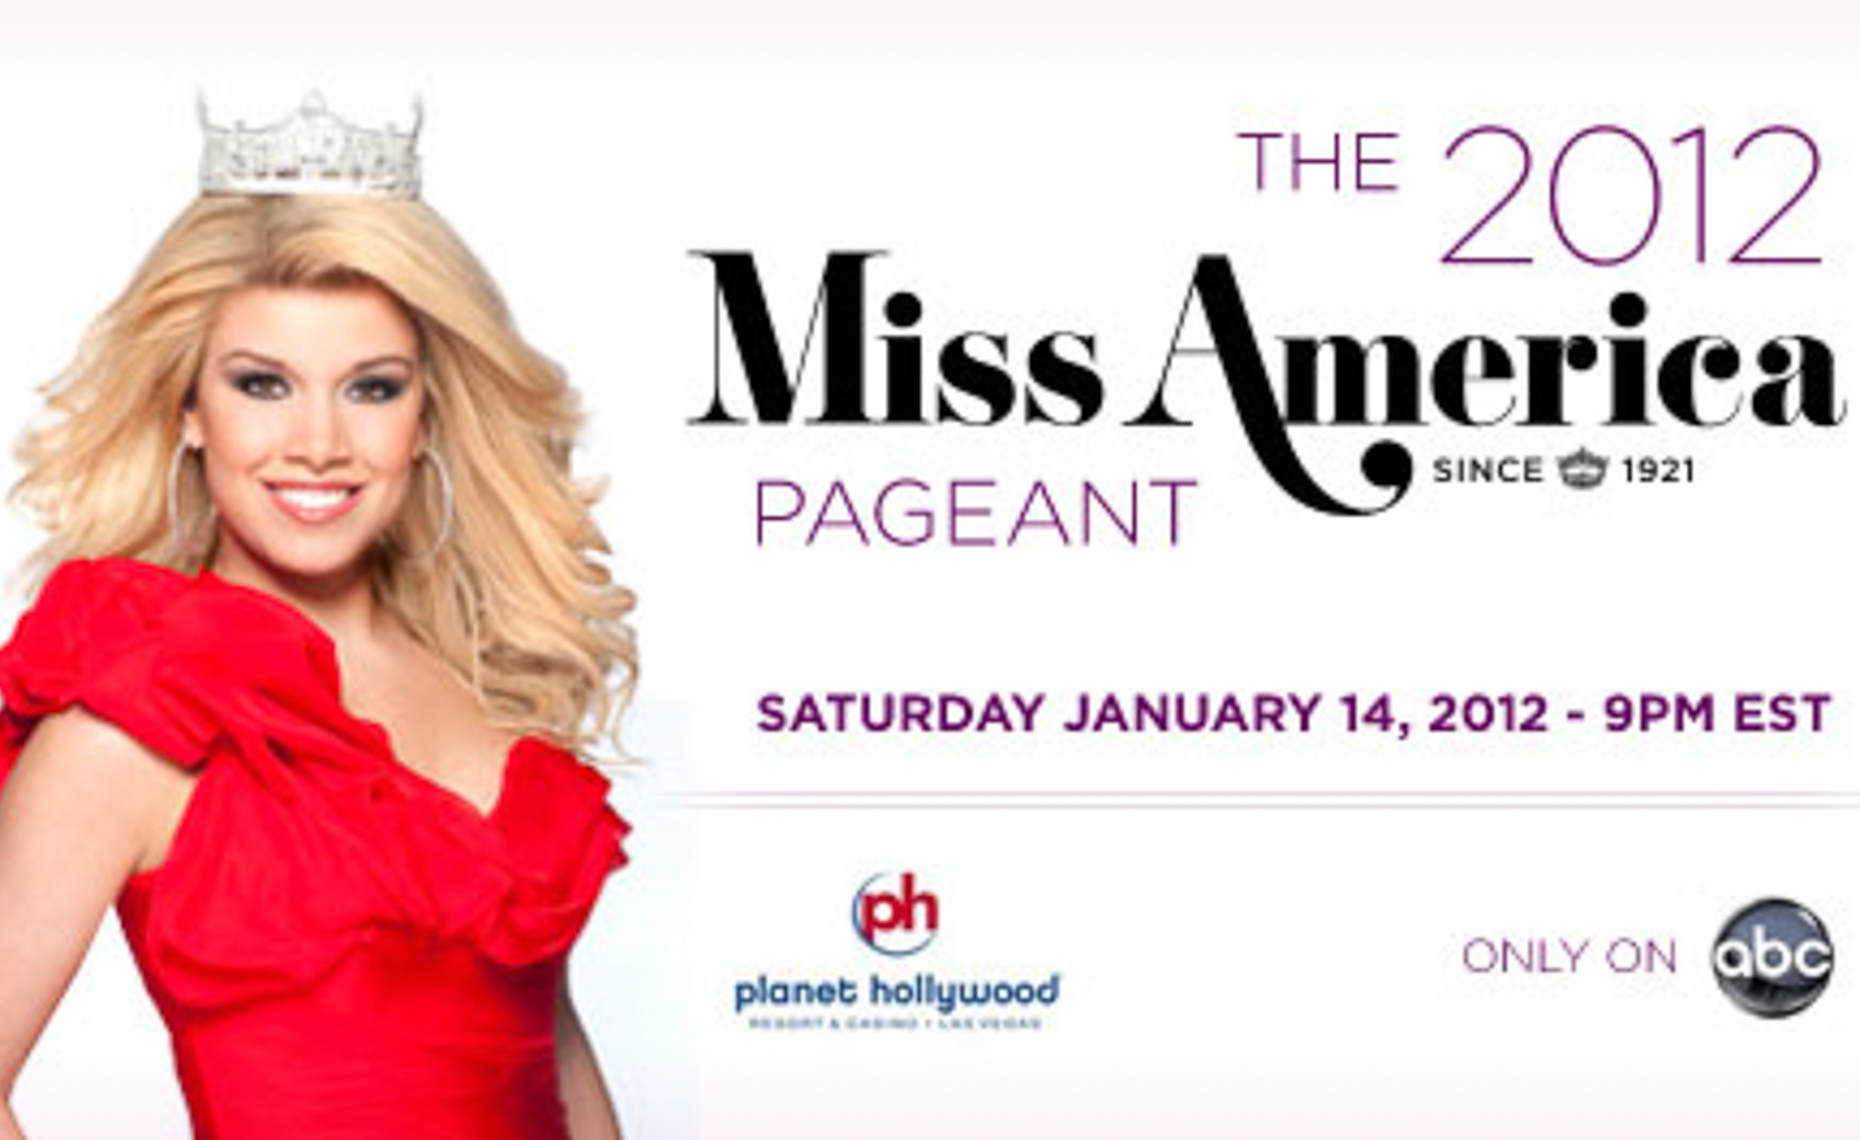 the-2012-miss-america-pageant